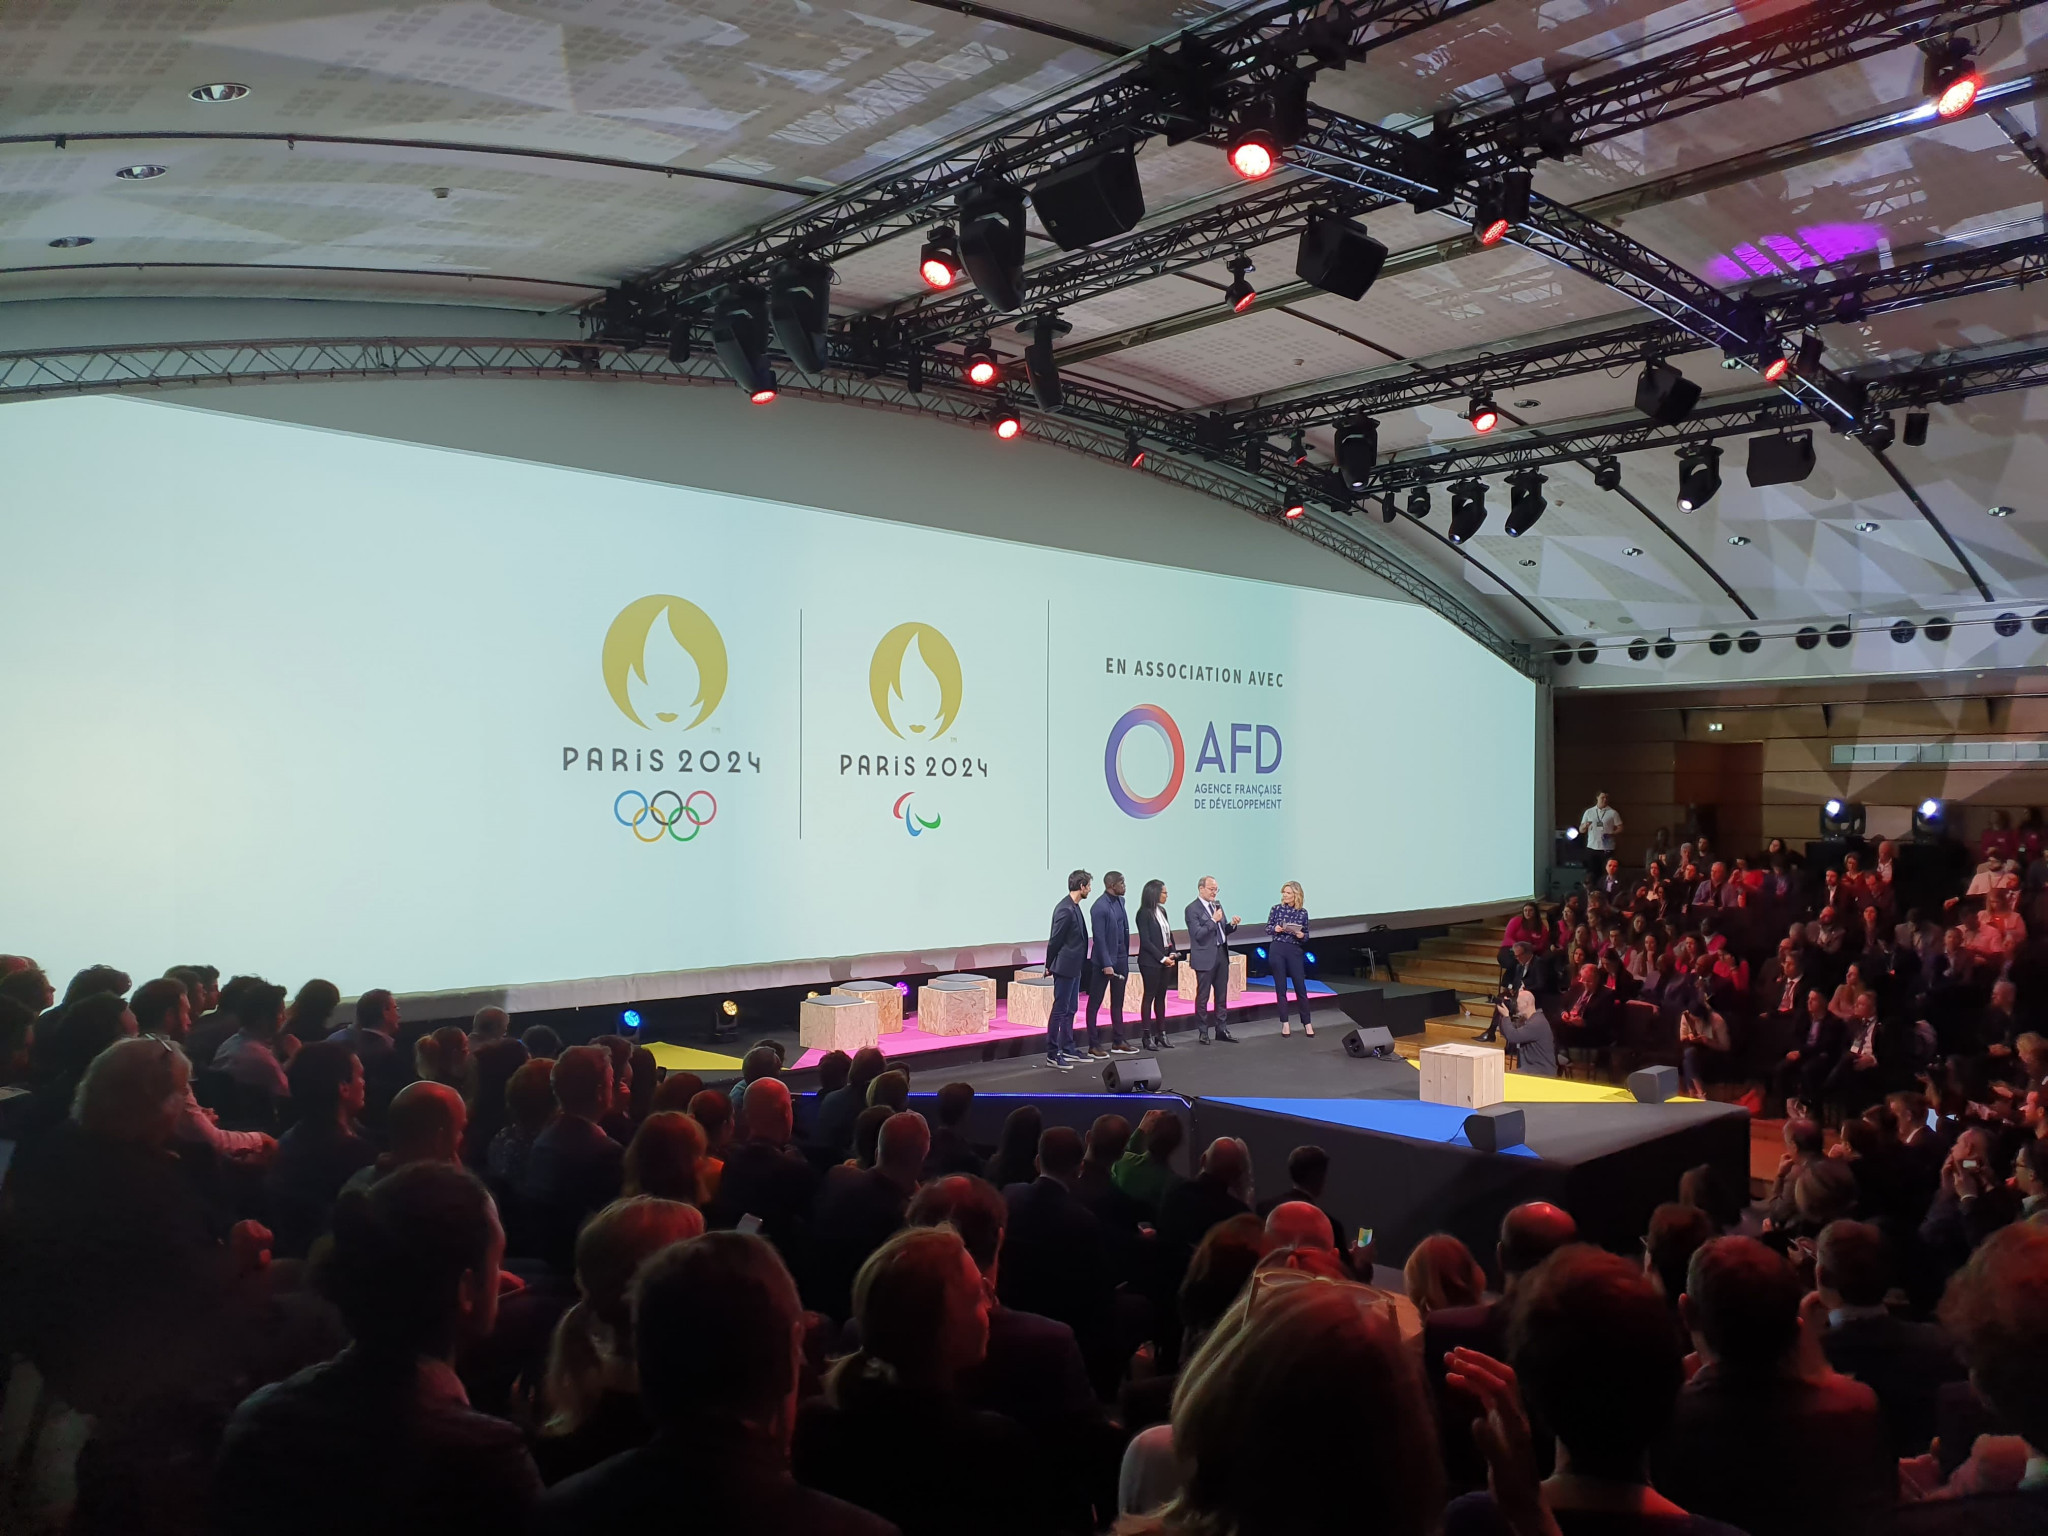 Paris 2024 partner with AFD to support sporting sustainable development projects